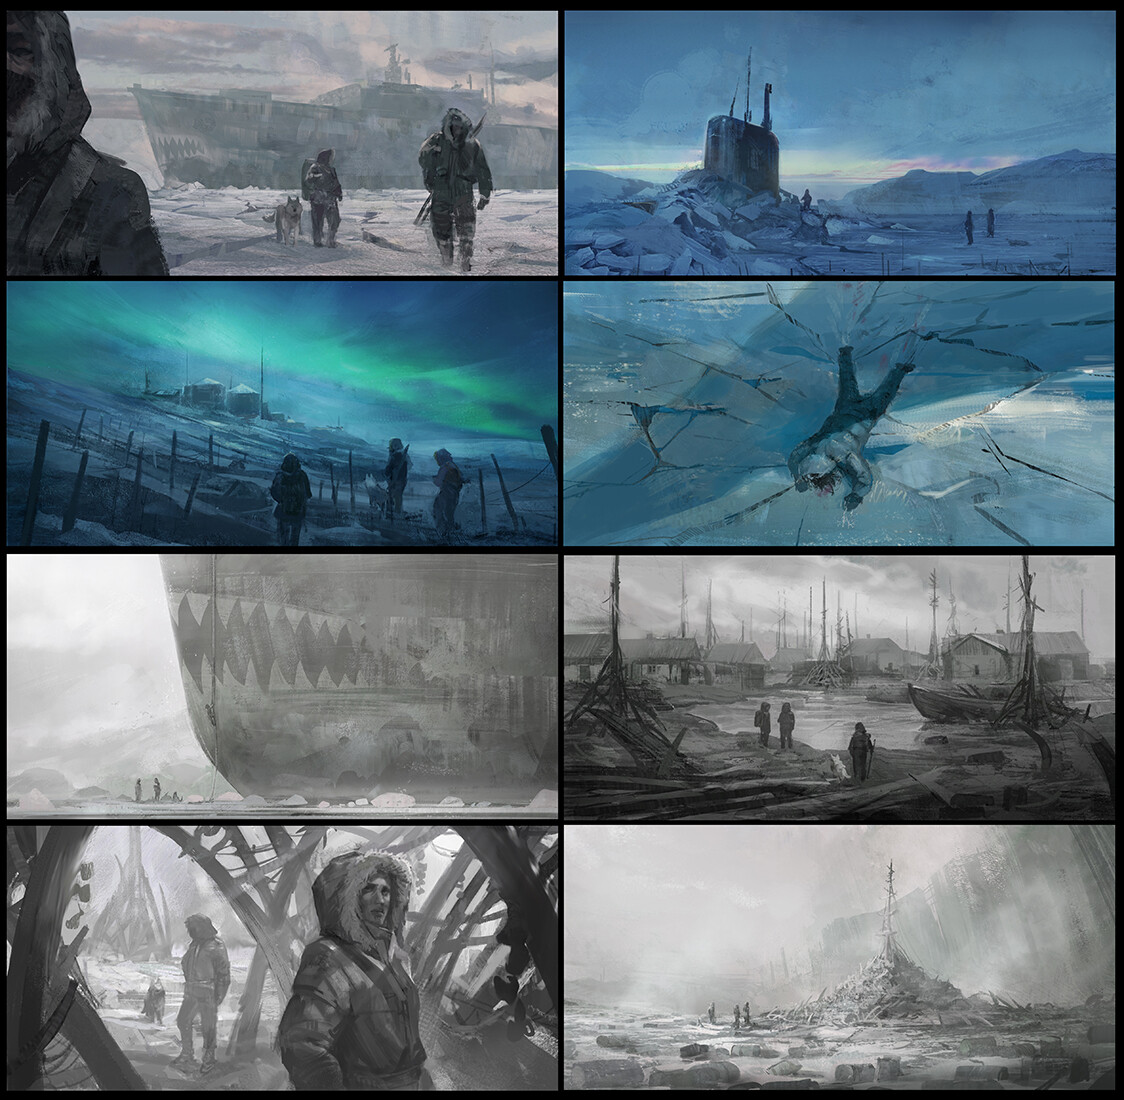 Sketches of possible scenes